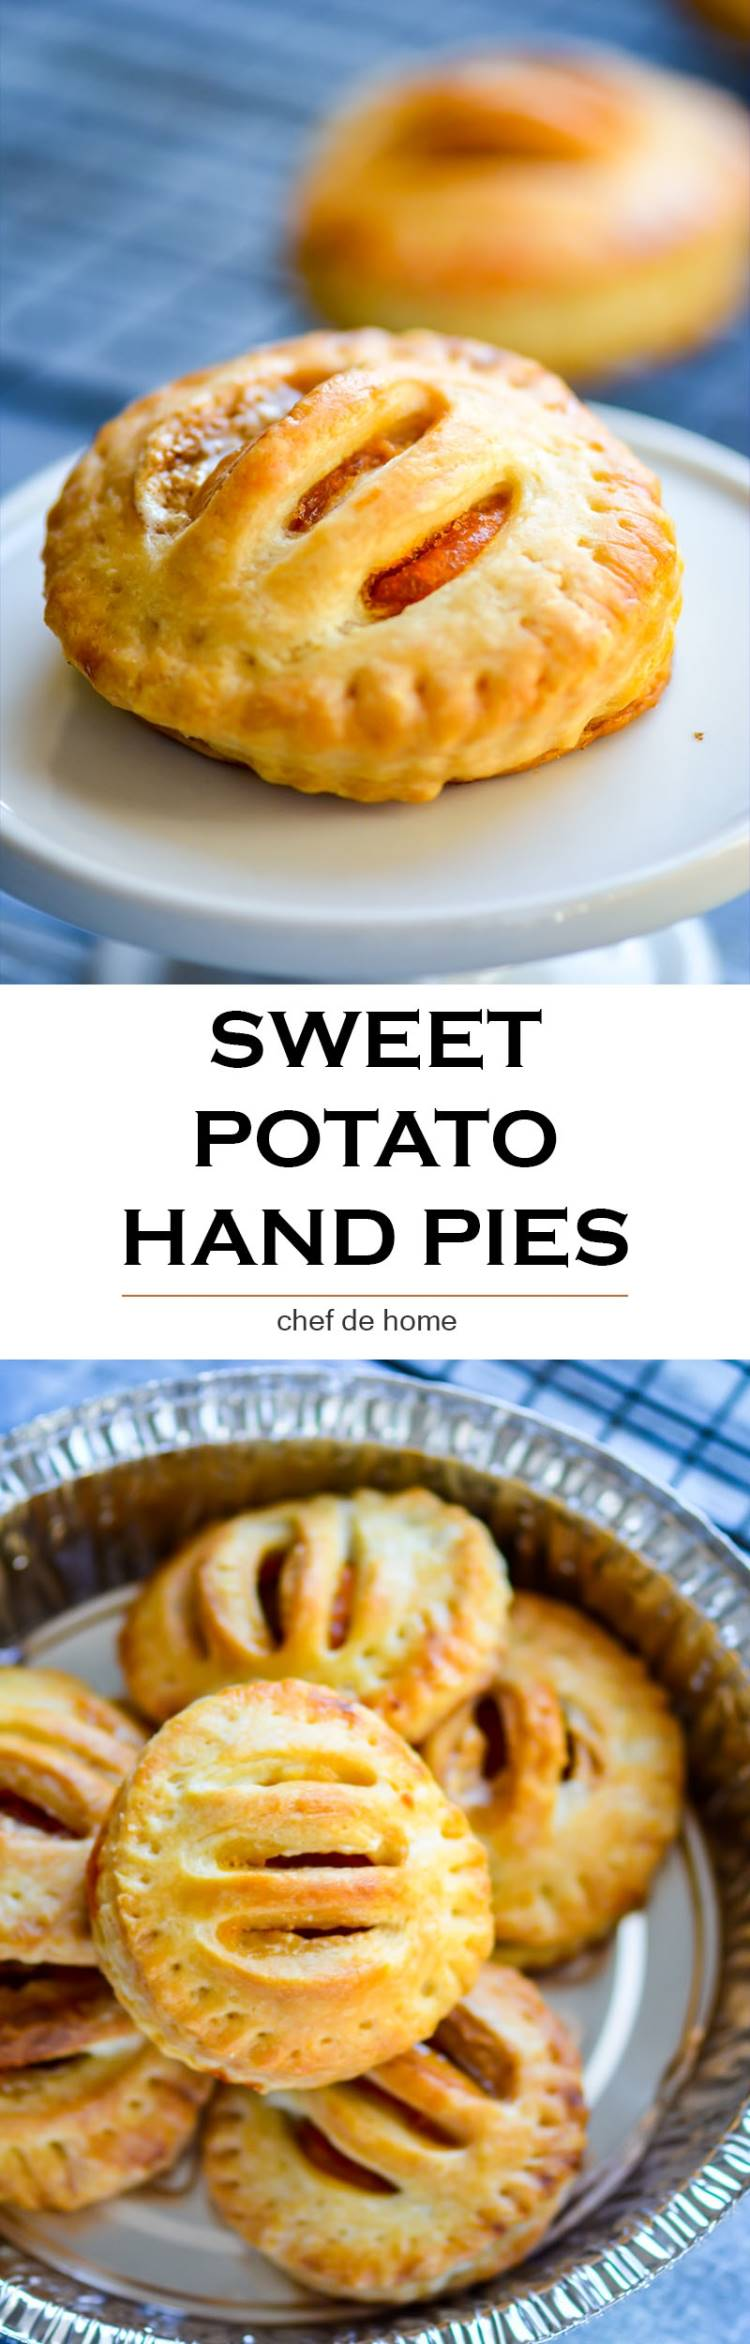 Leftover sweet potato hand pies | chefdehome.com